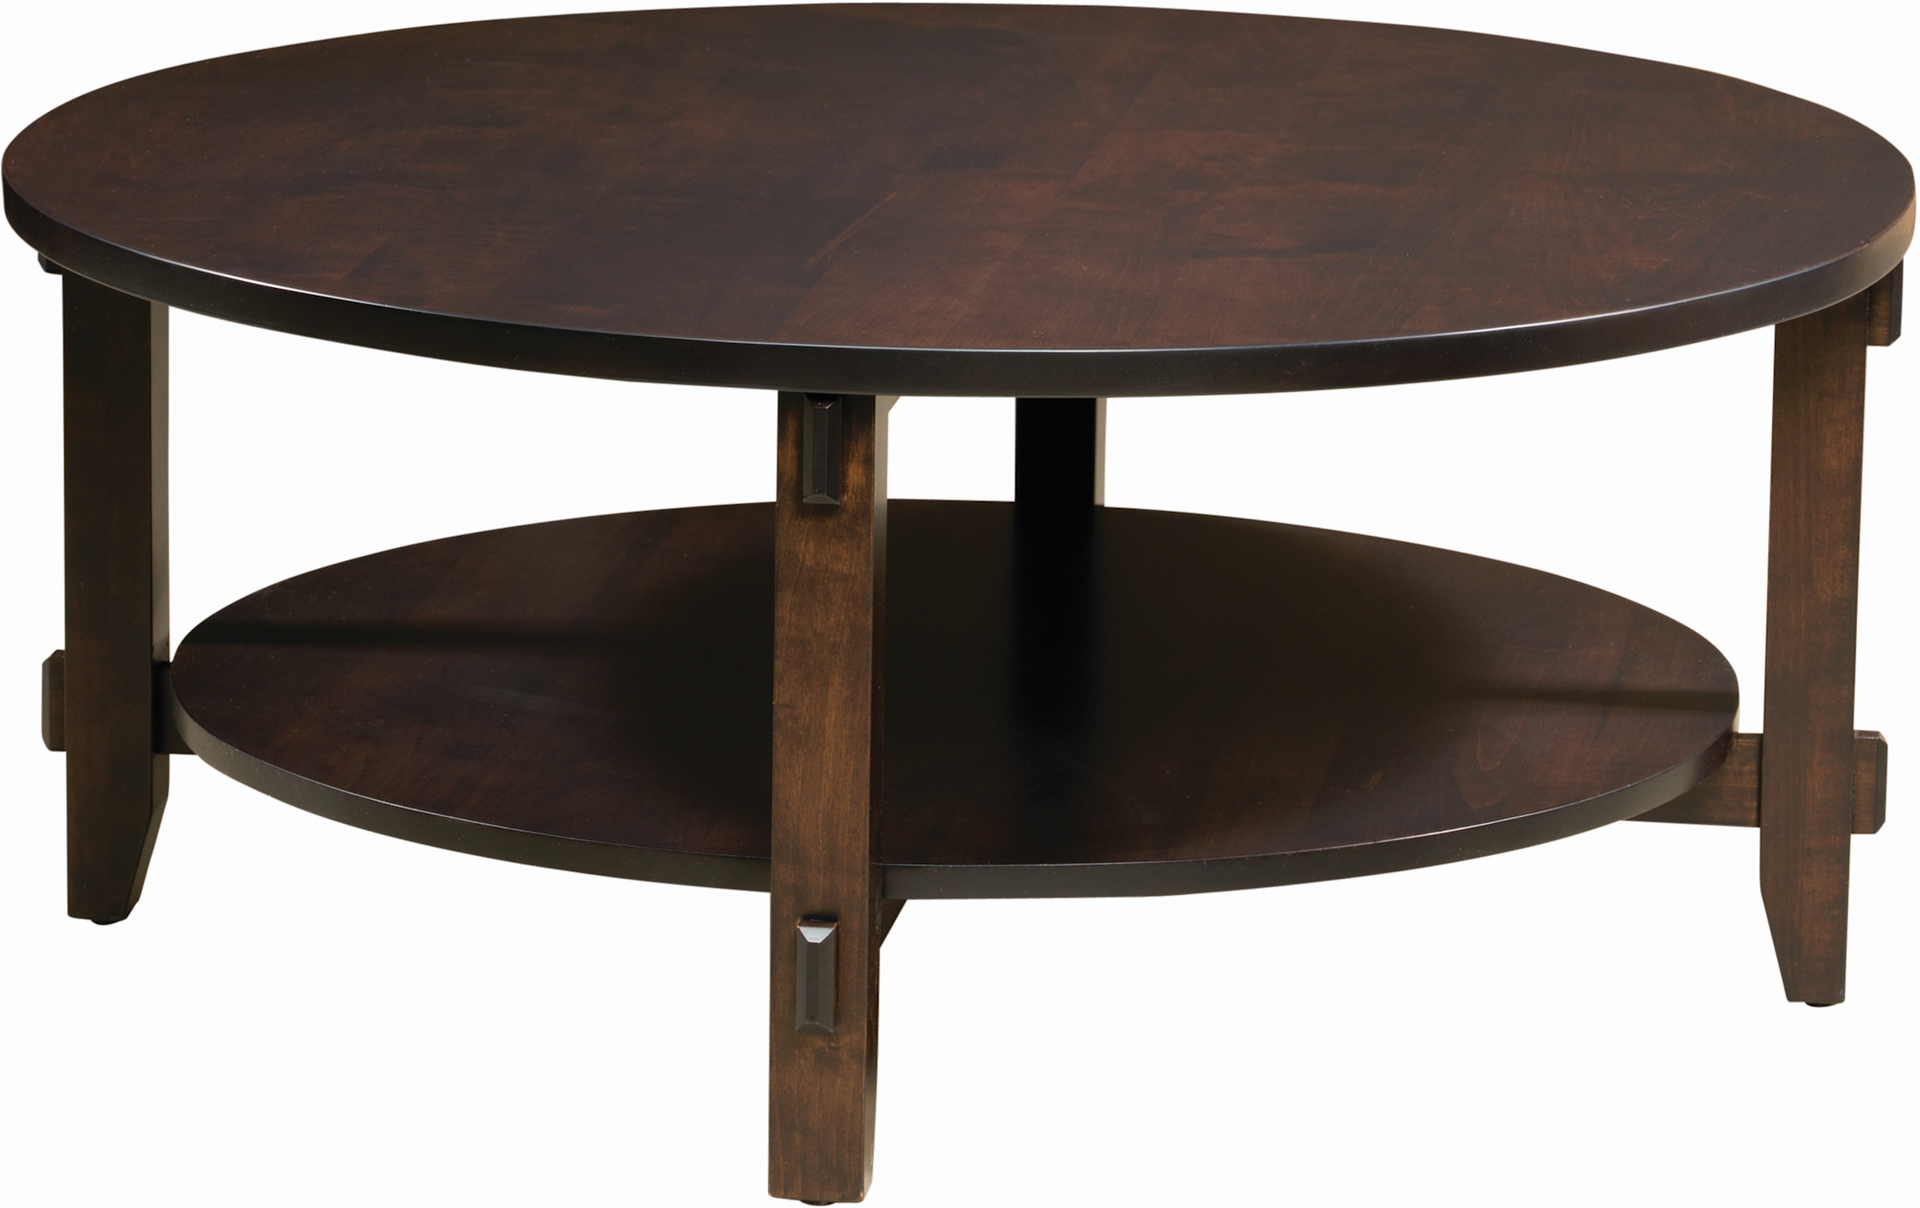 Round Bungalow Coffee Table Amish Bungalow Round Coffee